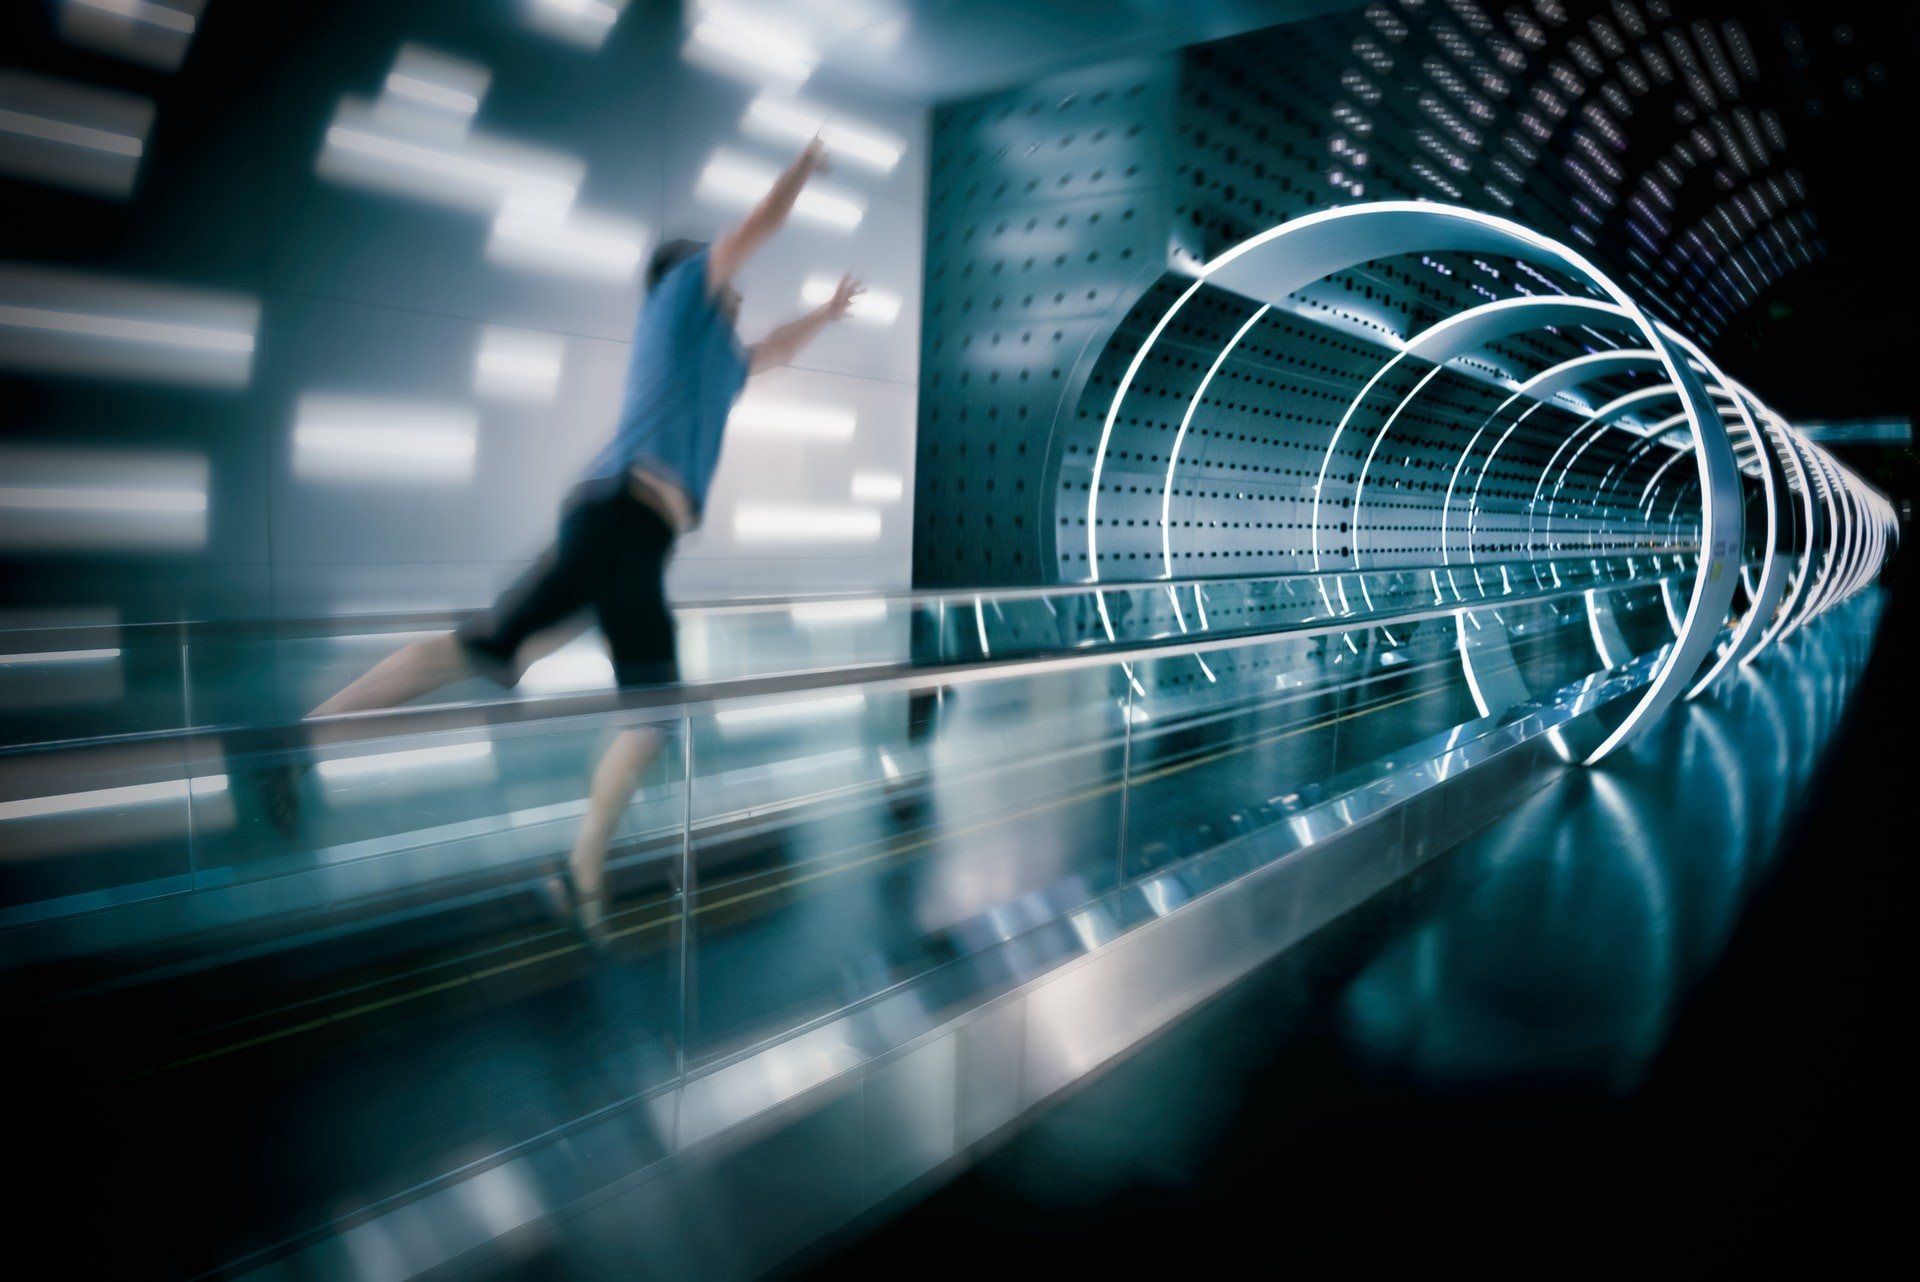 Teleportation Device Patent Submitted on Google Patents